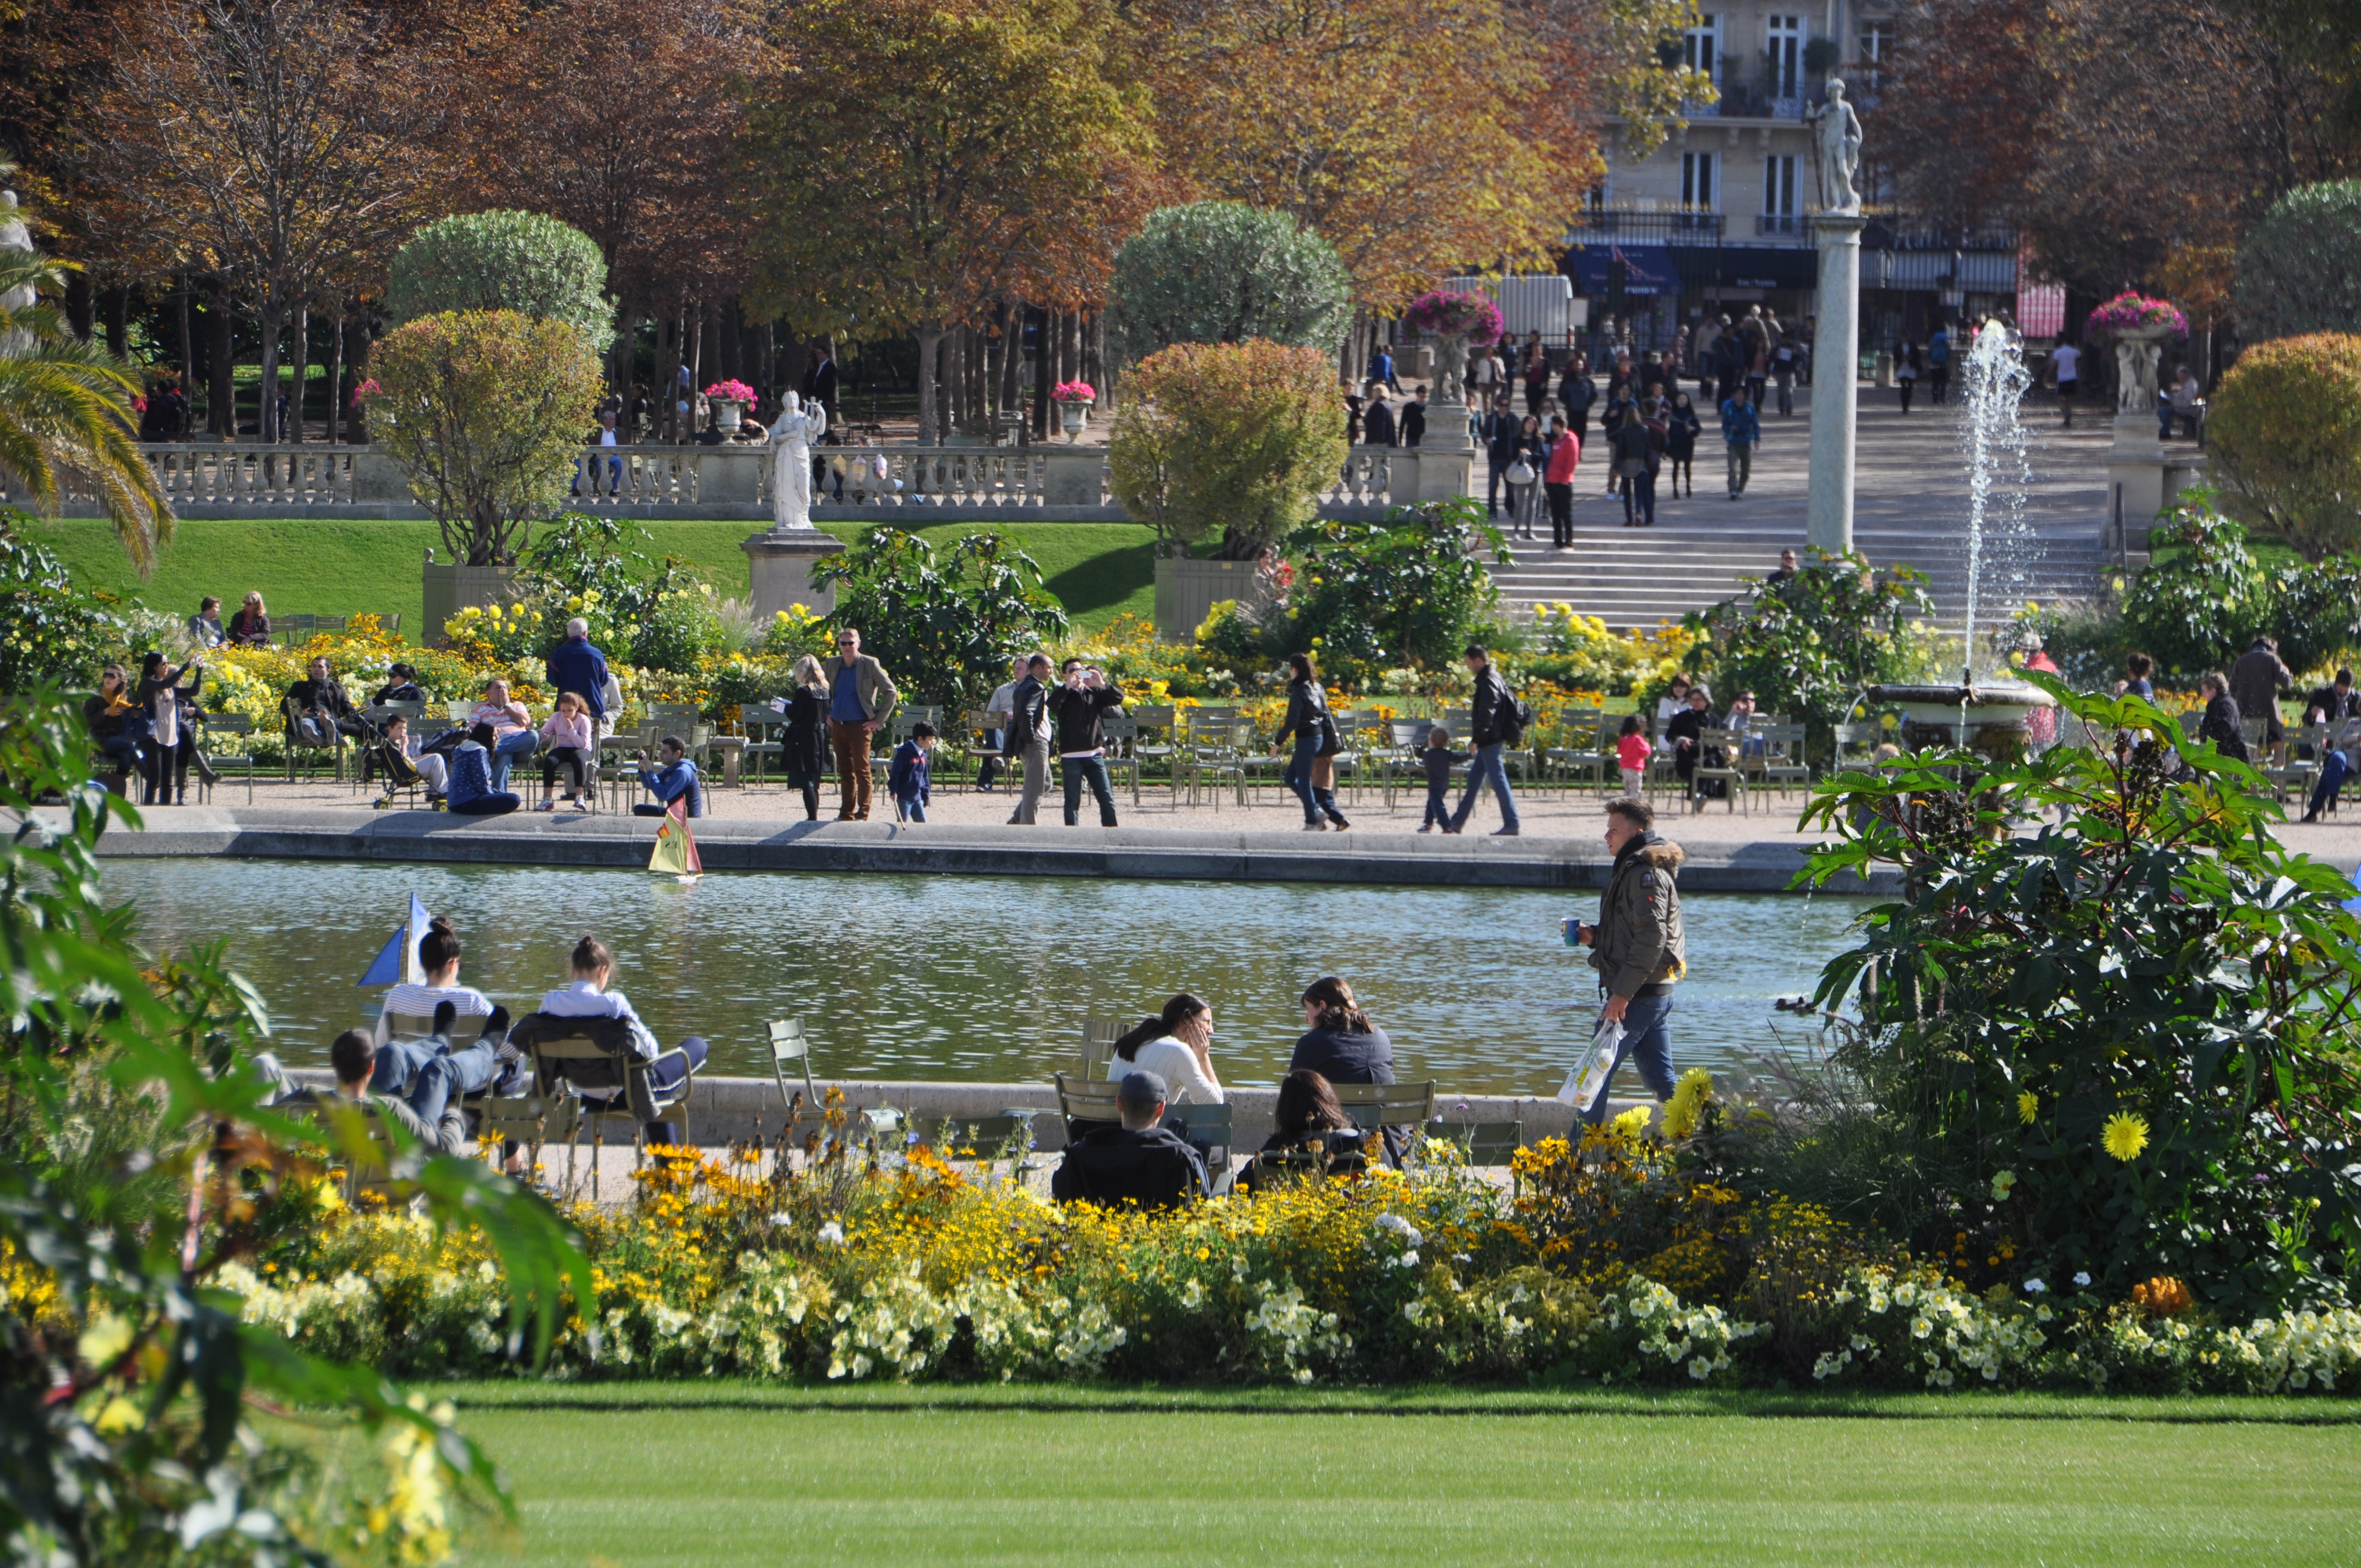 File jardin du luxembourg 2 paris 29 september for Jardin luxemburgo